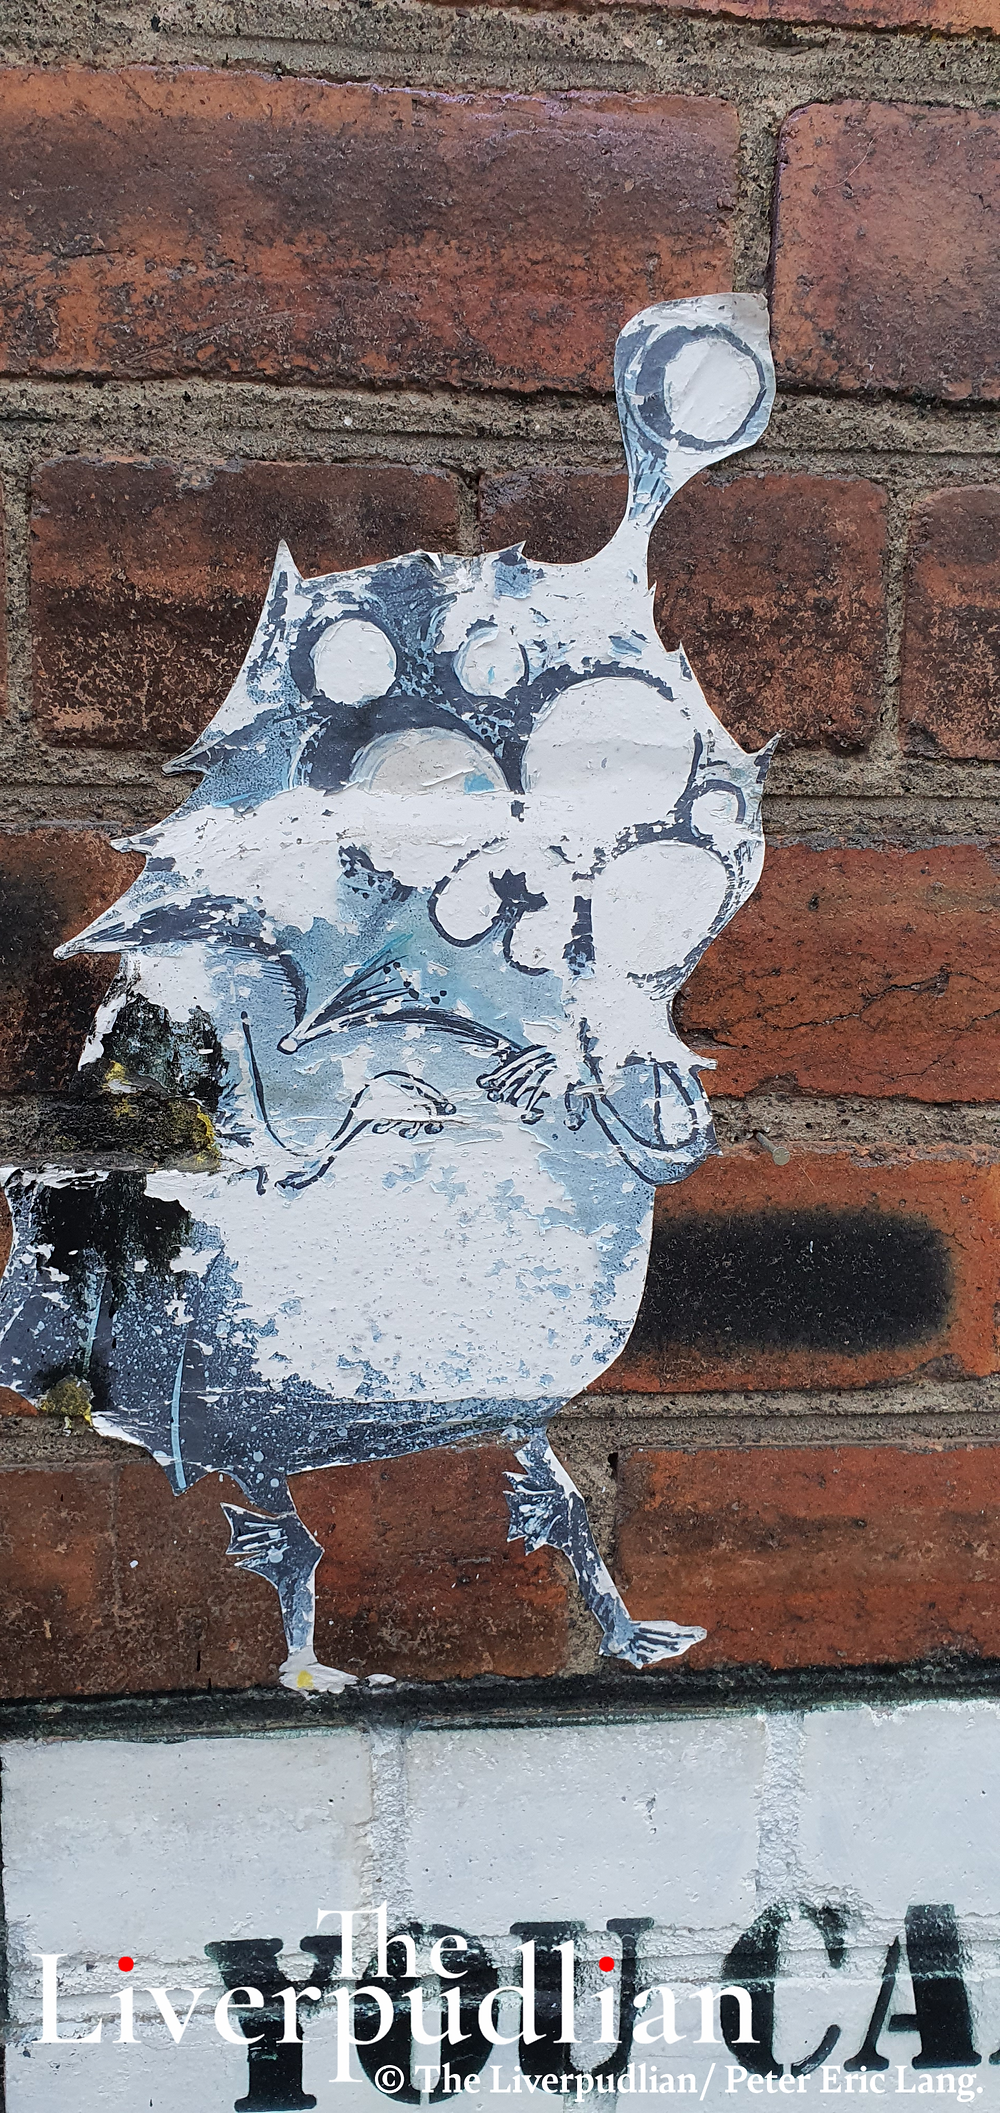 Paste up artwork by 'Lost Hills' in Liverpool City Centre's The Baltic Triangle creative district (Credit: The Liverpudlian/Peter Eric Lang).